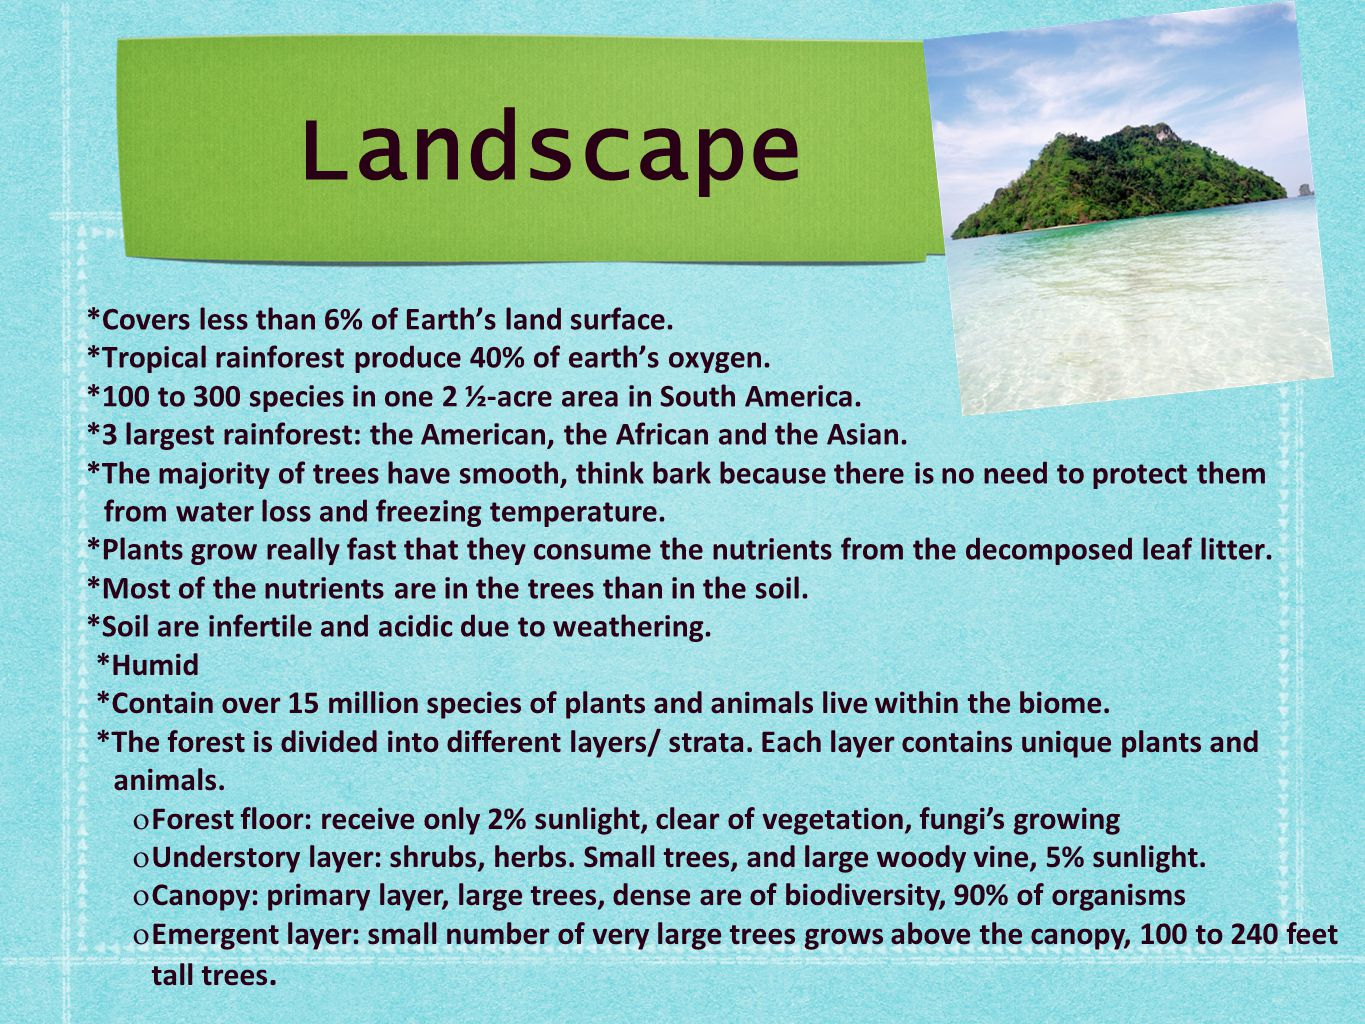 Landscape *Covers less than 6% of Earth's land surface.